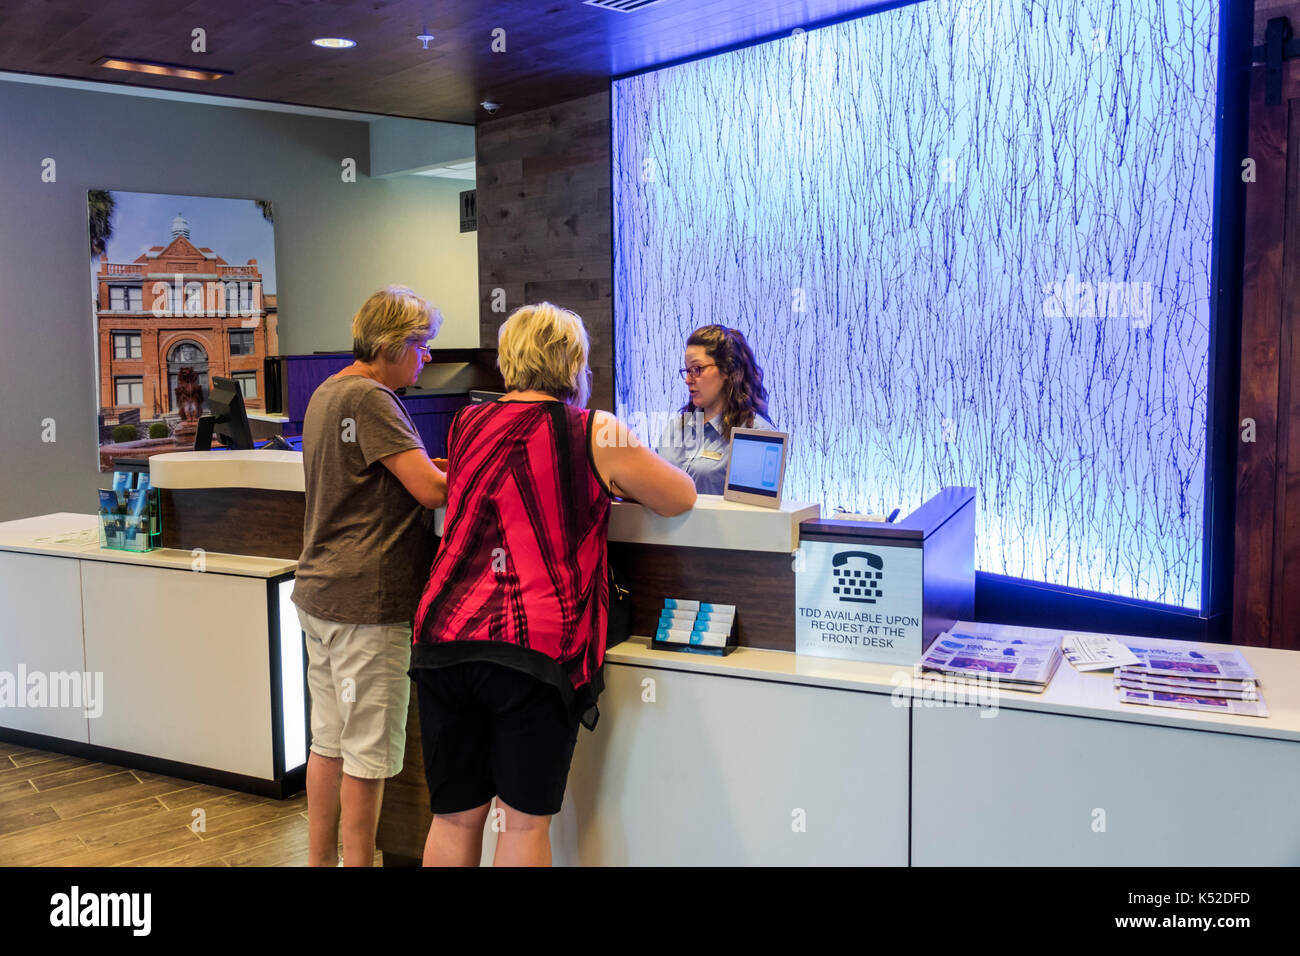 Savannah Georgia Midtown Fairfield Inn & Suites hotel front desk check-in guest woman agent - Stock Image